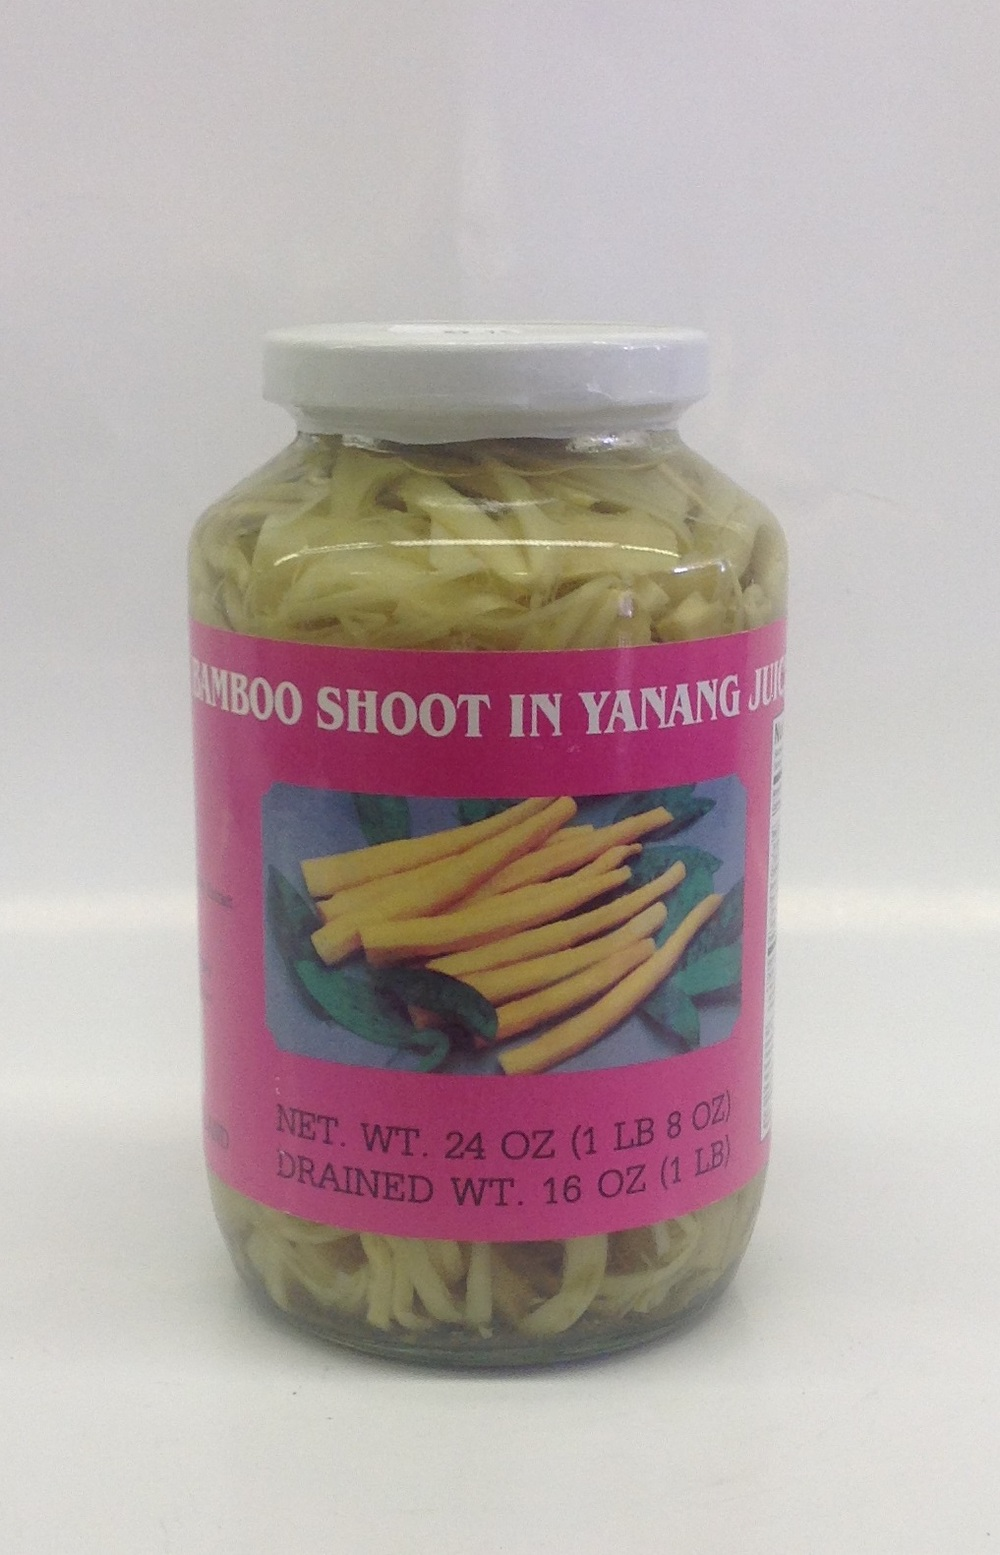 Bamboo Shoot in Yanang Juice    Parrot   BBY1160 12x24 oz